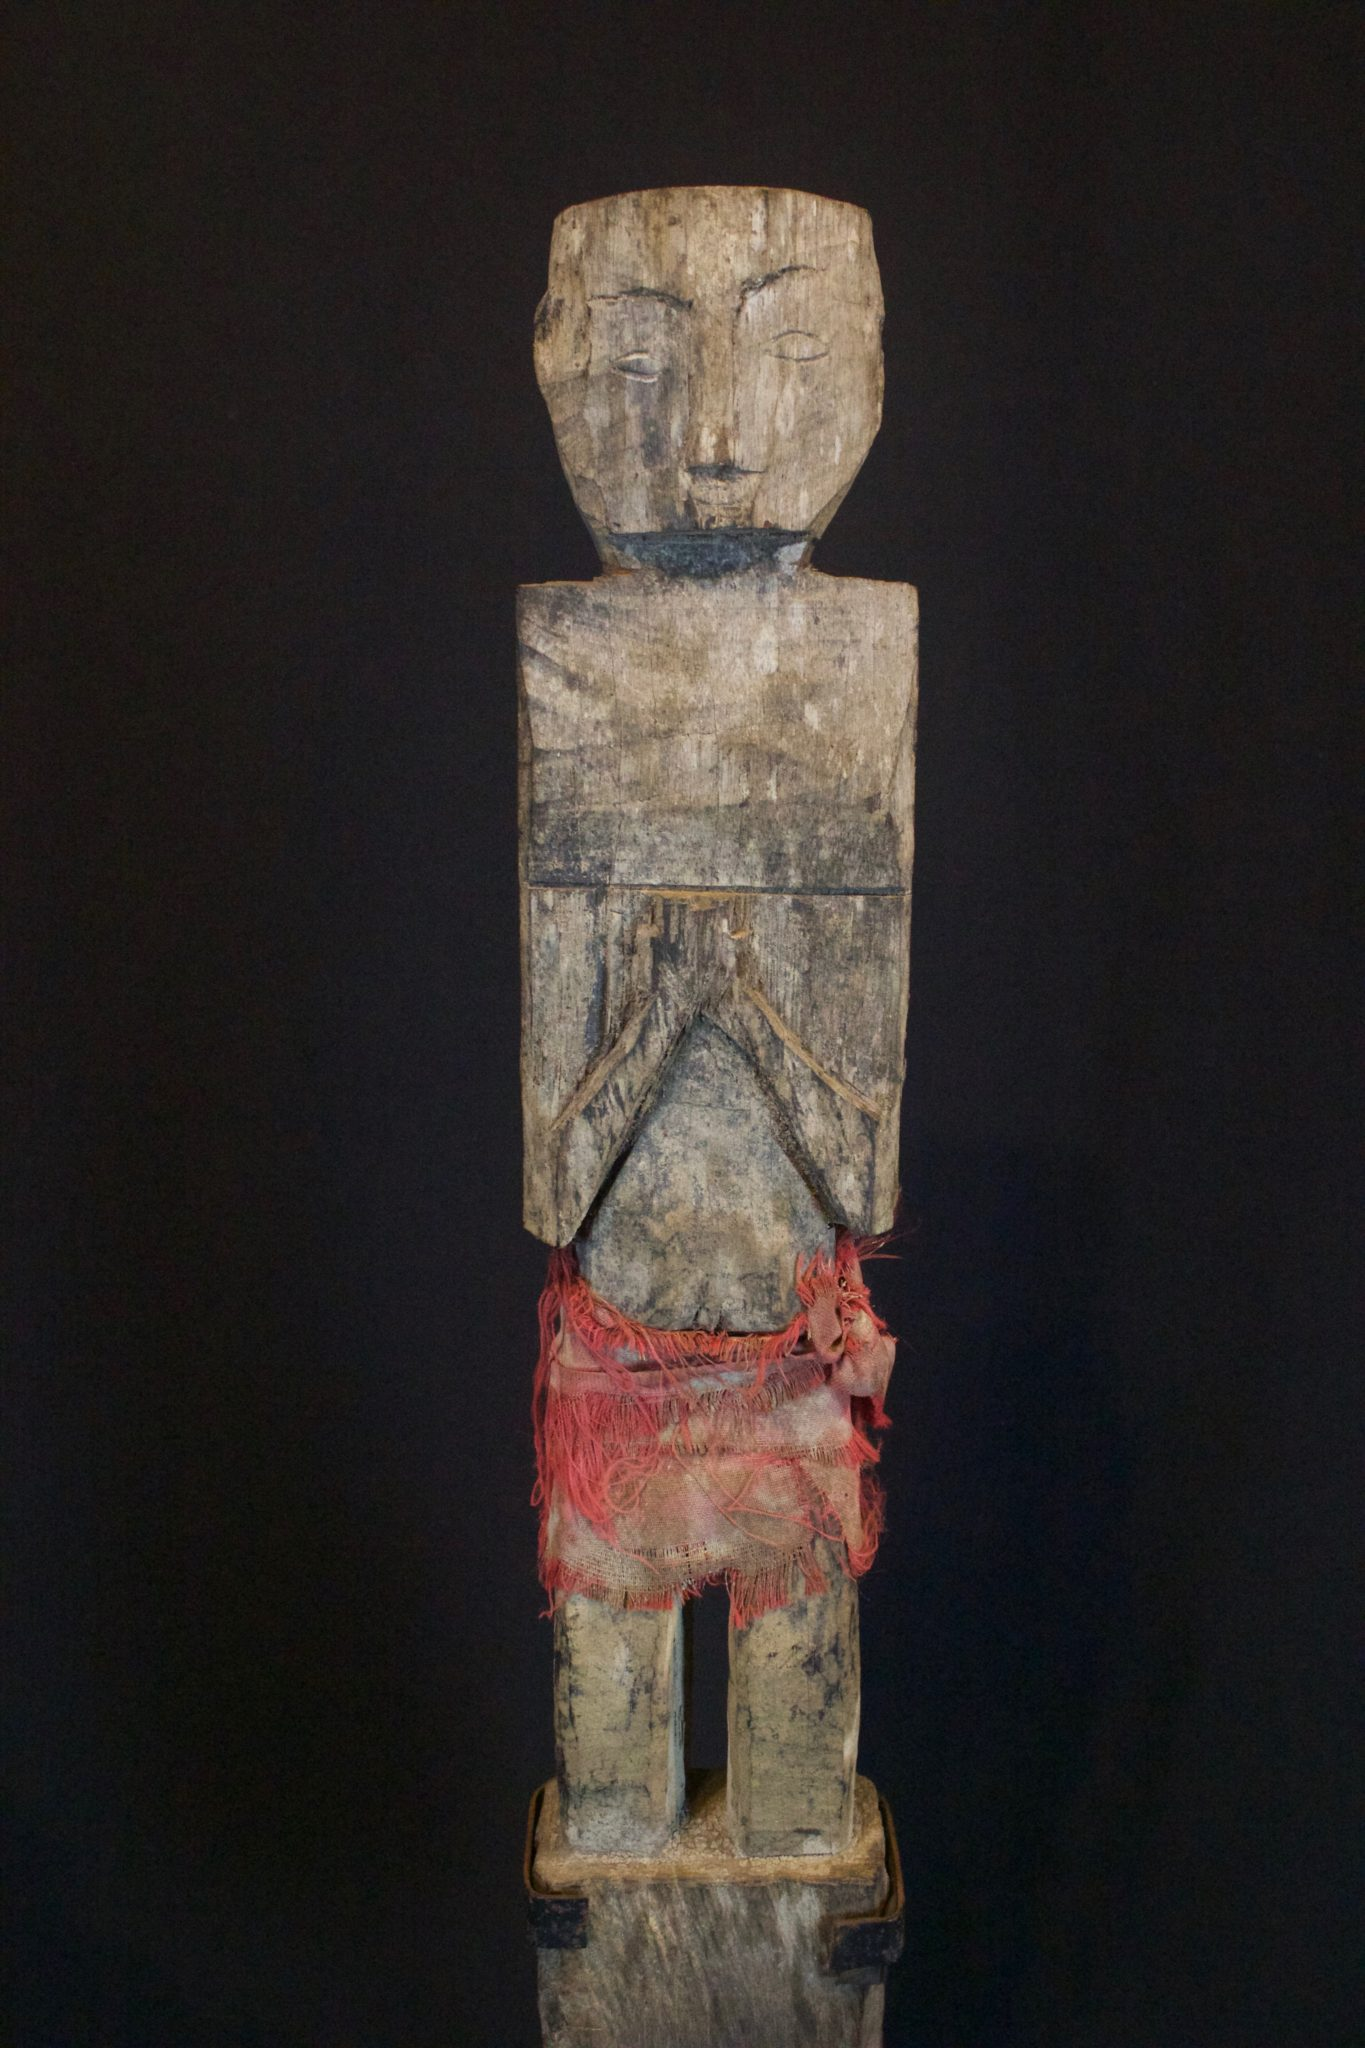 """Shaman Figure with Red Skirt, Kalimantan, Borneo, Indonesia, Dayak, Early 20th c, Wood, cotton cloth. Used for healing and protection. 20"""" x 4"""" x 2"""", $800."""